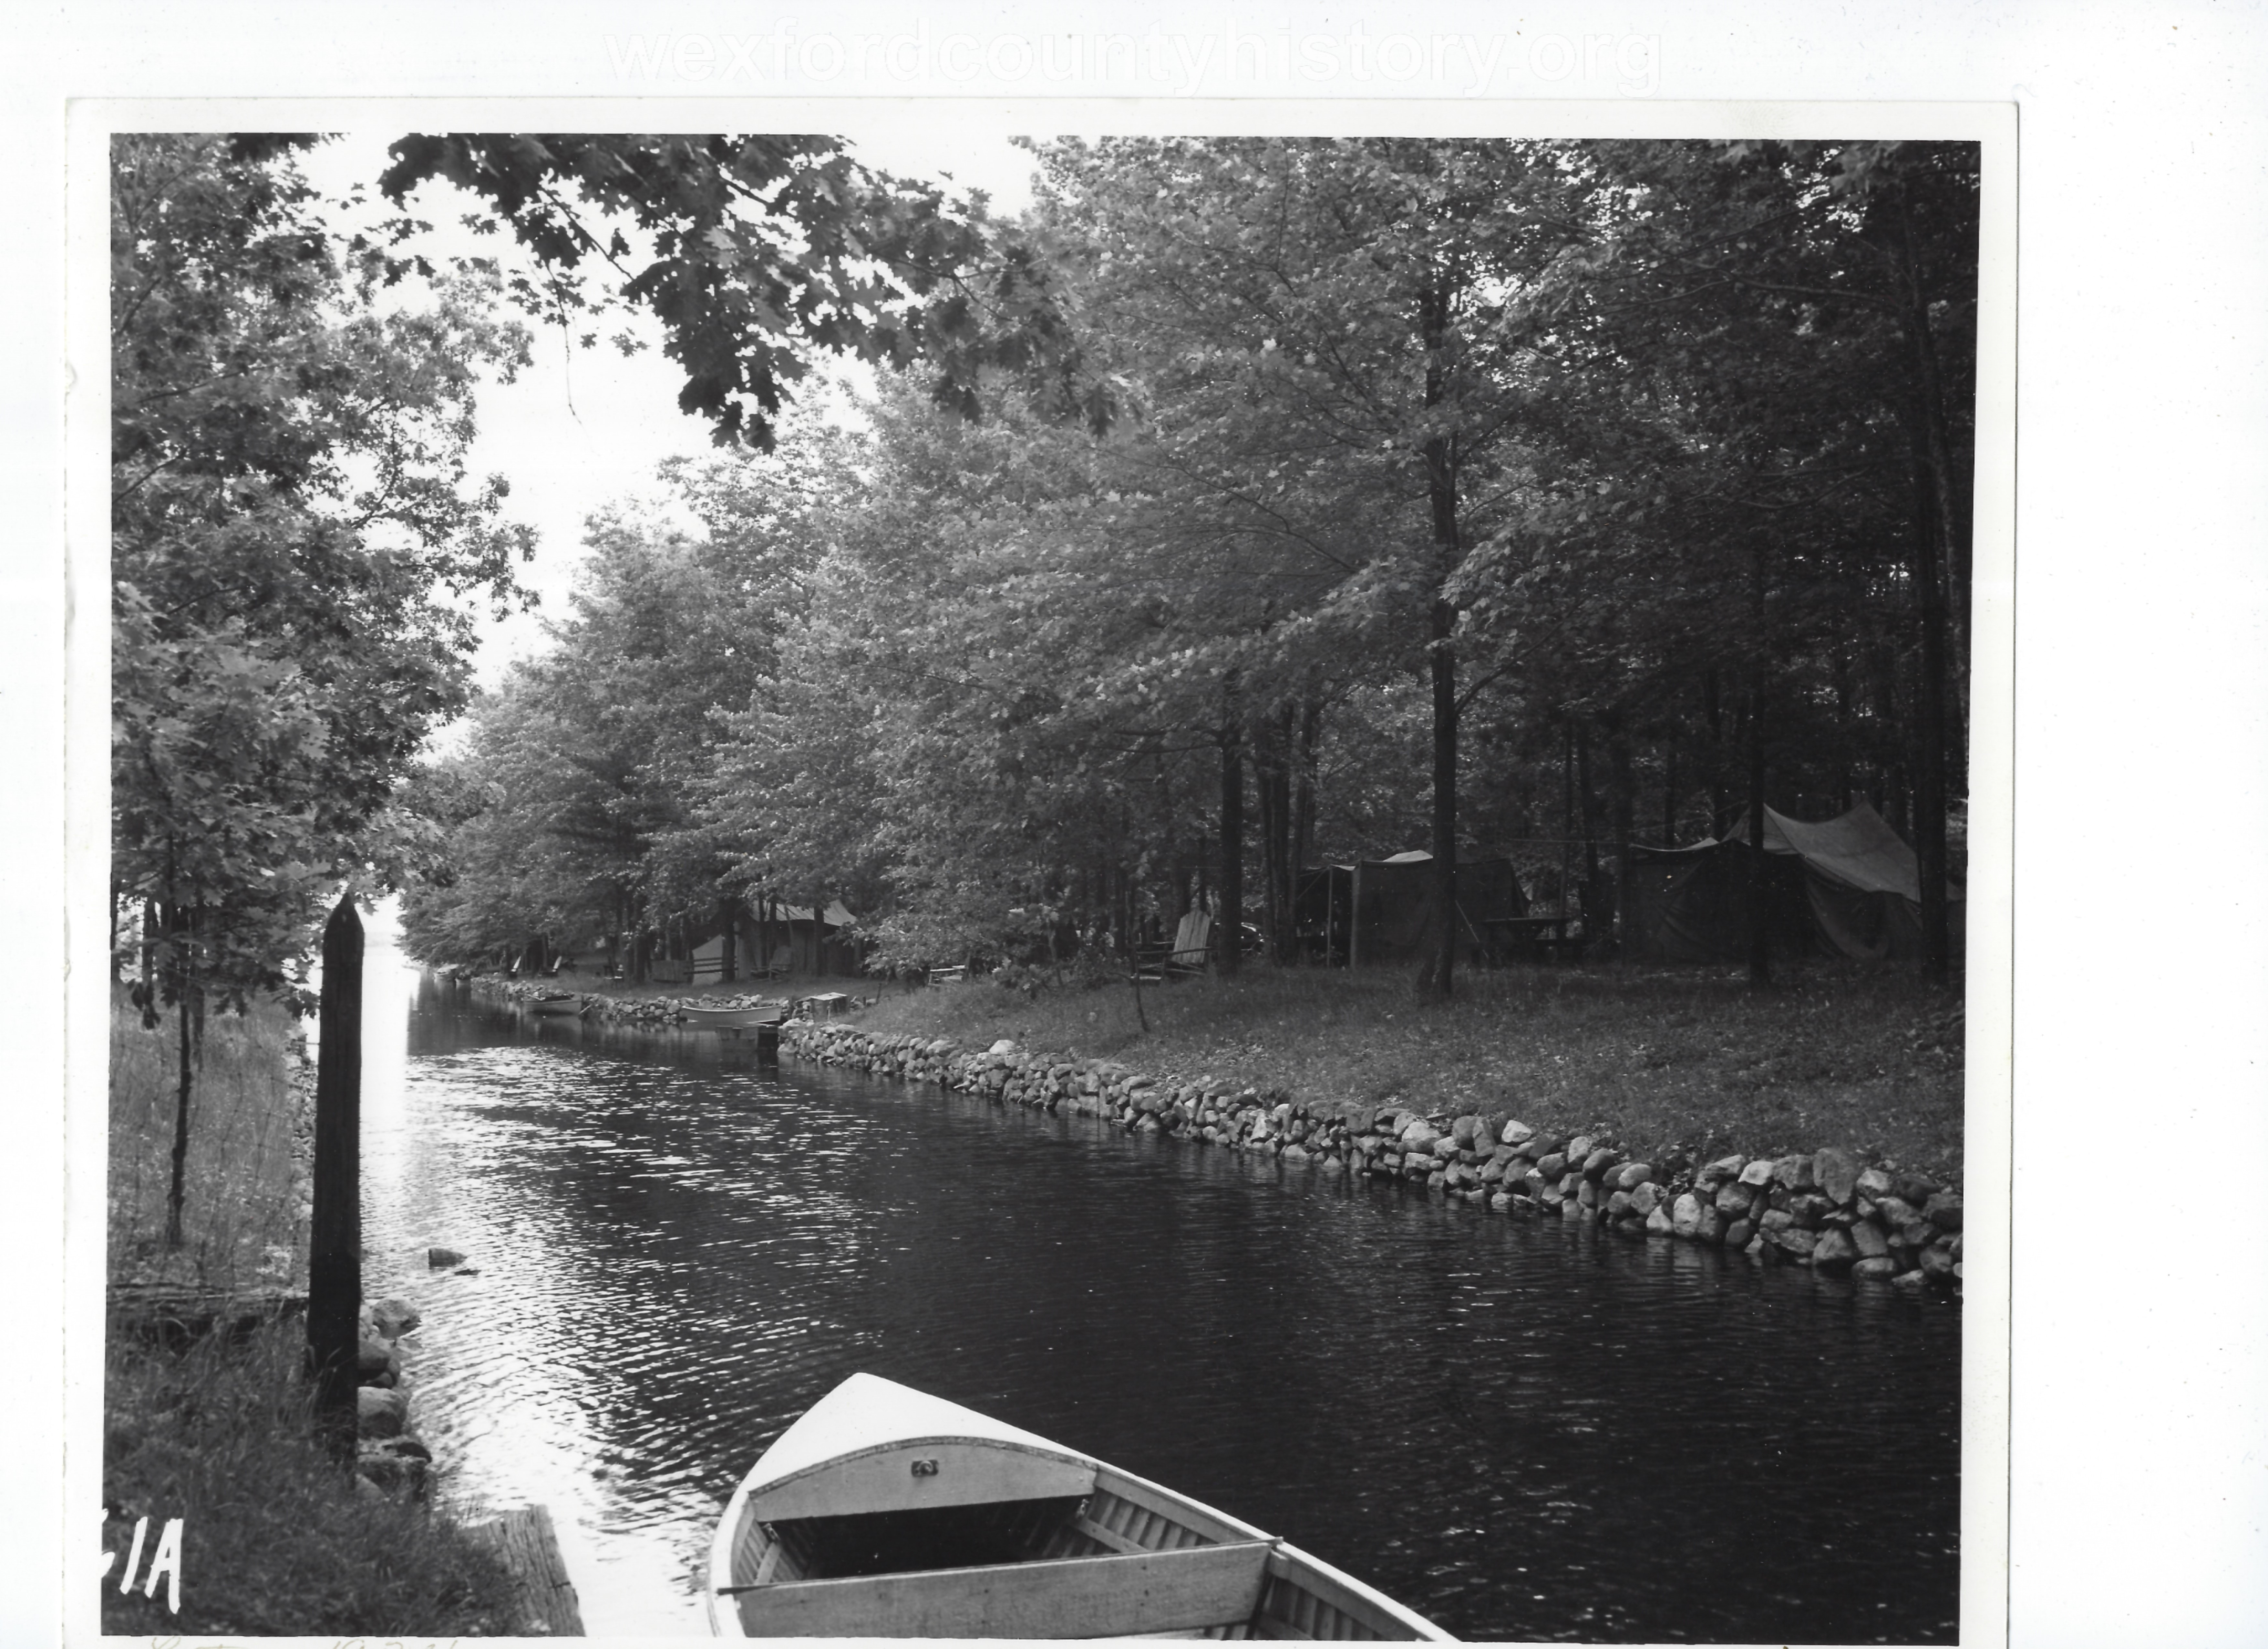 Cadillac-Recreation-The-Canal-66